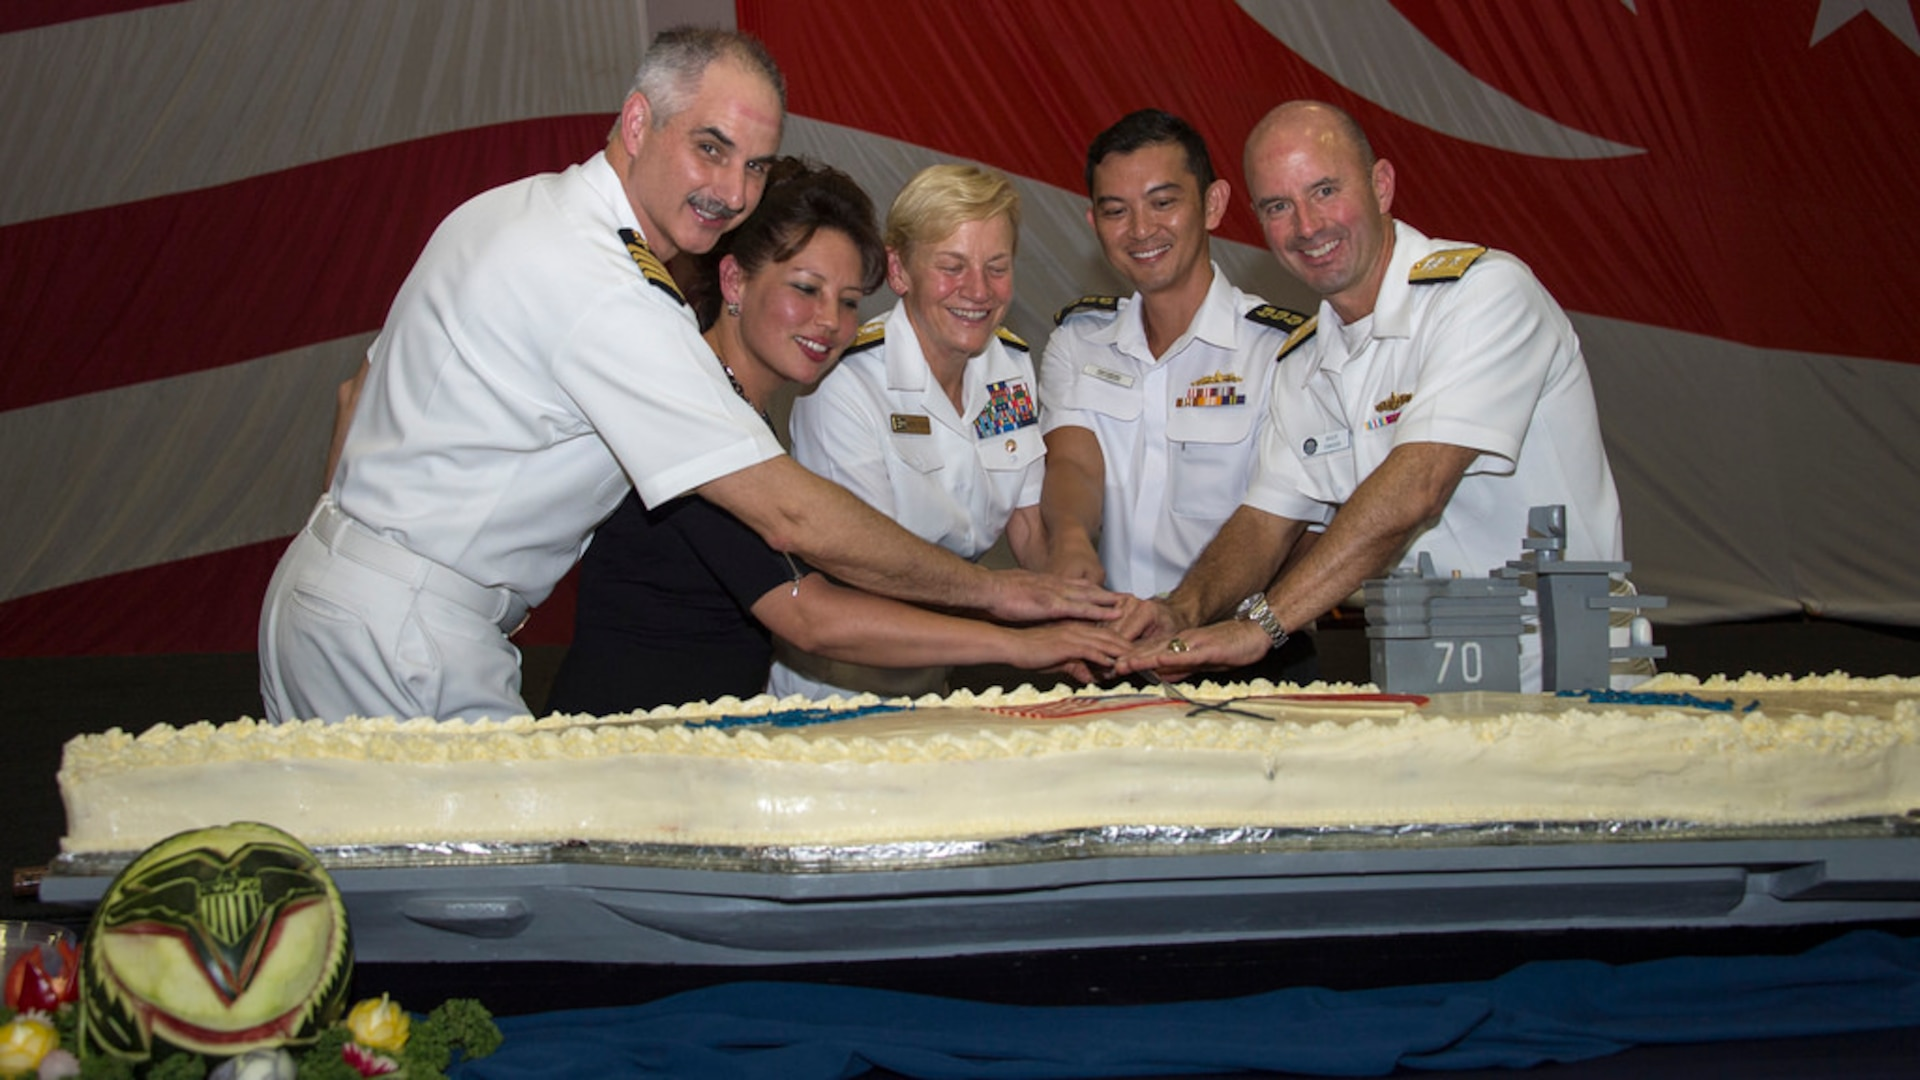 (left to right) USS Carl Vinson (CVN 70) commanding officer Capt. Doug Verissimo; Chargé d'Affaires, ad interim, U.S. Embassy Singapore Stephanie Syptak-Ramnath; Commander, U.S. Third Fleet Vice Adm. Nora Tyson; Commander, Singapore Fleet, Col. Cheong Kwok Chien; and Commander, Carrier Strike Group 1 Rear Adm. Jim Kilby cut the cake during a Singapore reception aboard the aircraft carrier USS Carl Vinson (CVN 70), April 4, 2017. The Carl Vinson Strike Group is on a regularly scheduled Western Pacific deployment as part of the U.S. Pacific Fleet-led initiative to extend the command and control functions of U.S. 3rd Fleet. U.S. Navy aircraft carrier strike groups have patrolled the Indo-Asia-Pacific regularly and routinely for more than 70 years.